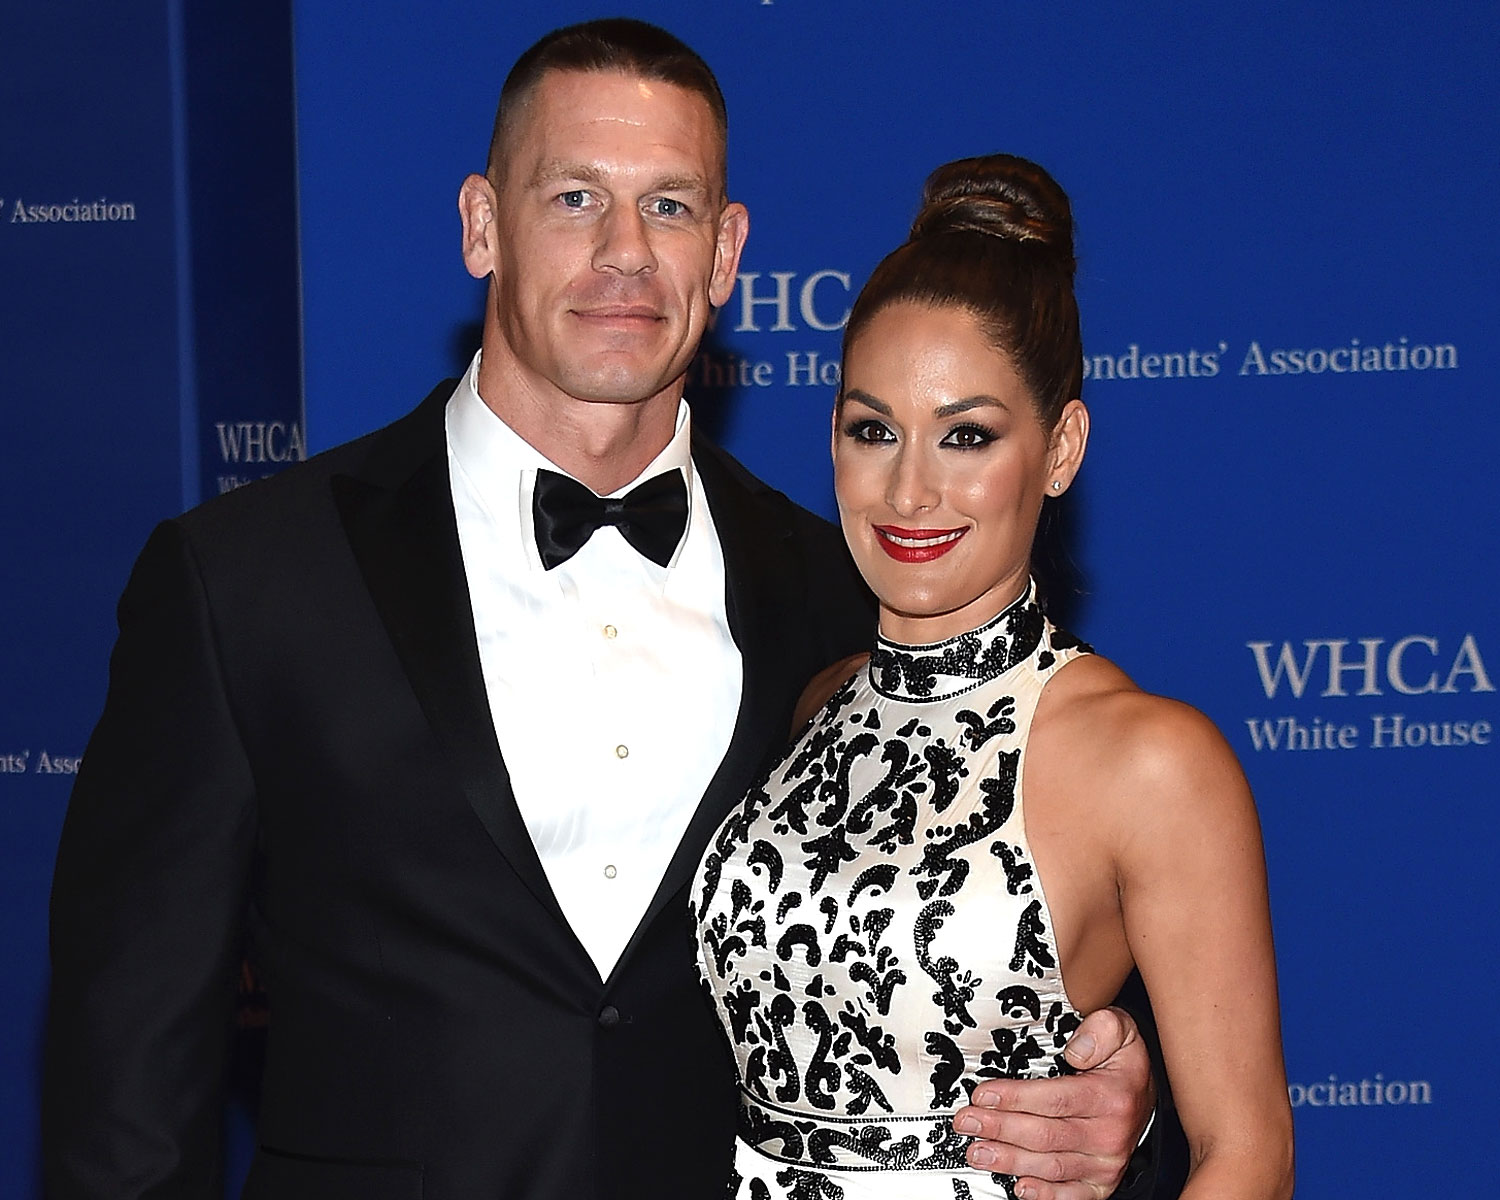 Nikki Bella on Her Engagement Ring From John Cena: Exclusive